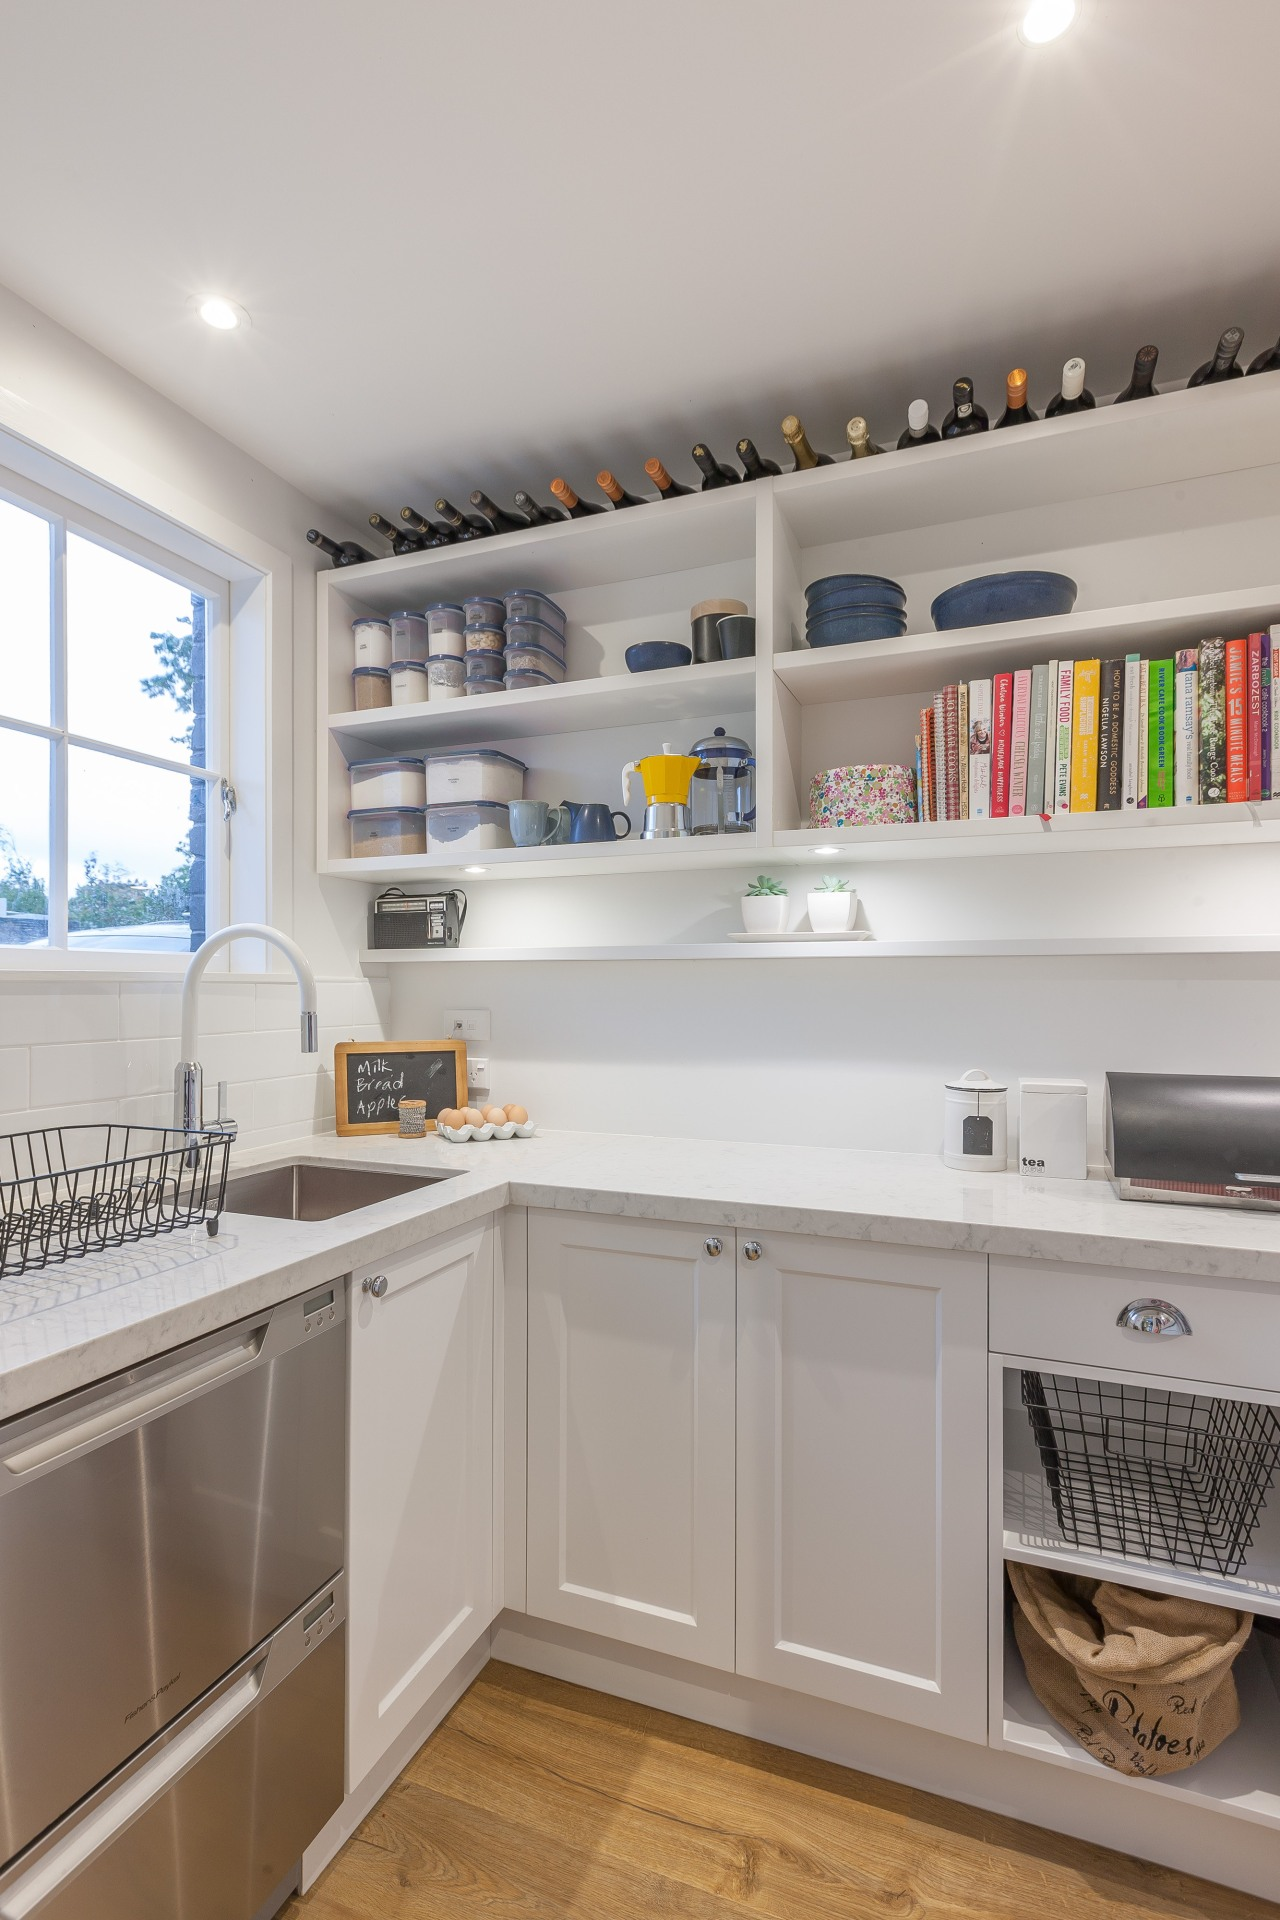 The scullery area in this Kira Gray kitchen cabinetry, countertop, interior design, kitchen, room, shelf, shelving, gray